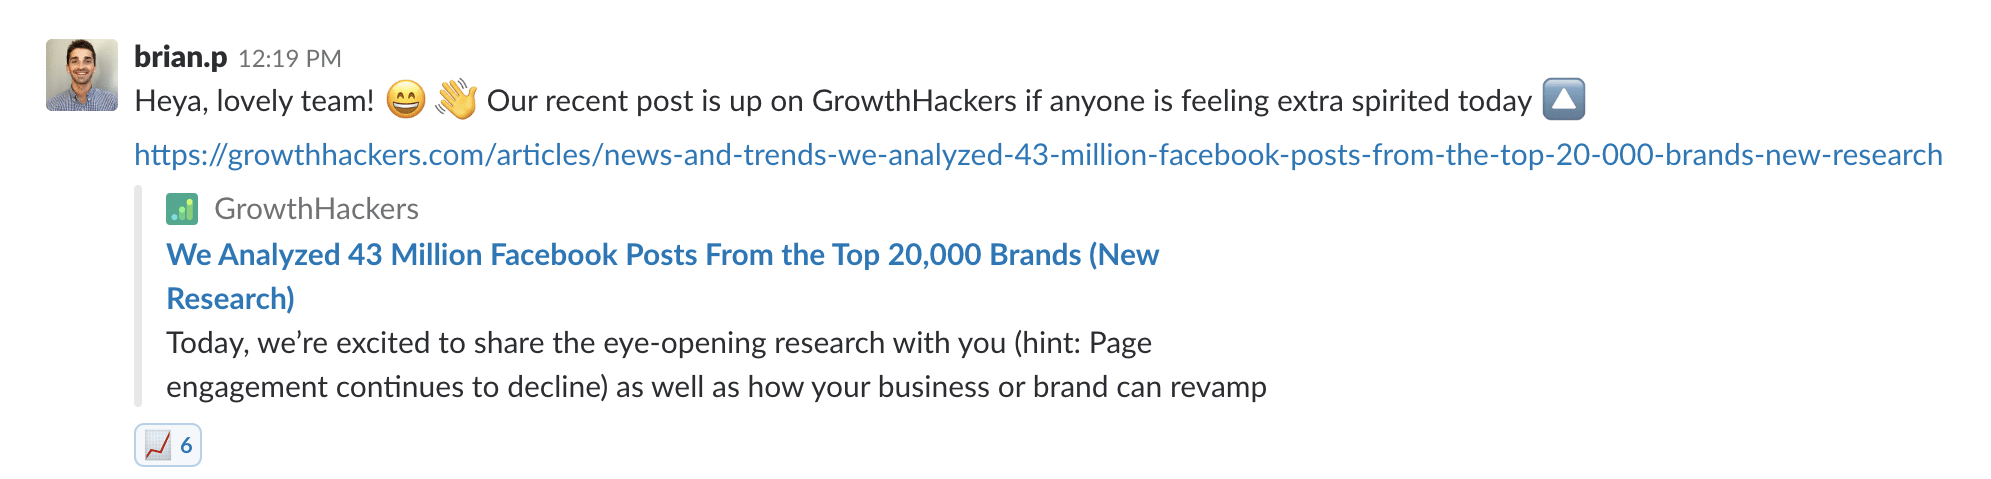 Ask for Content Upvotes on GrowthHackers